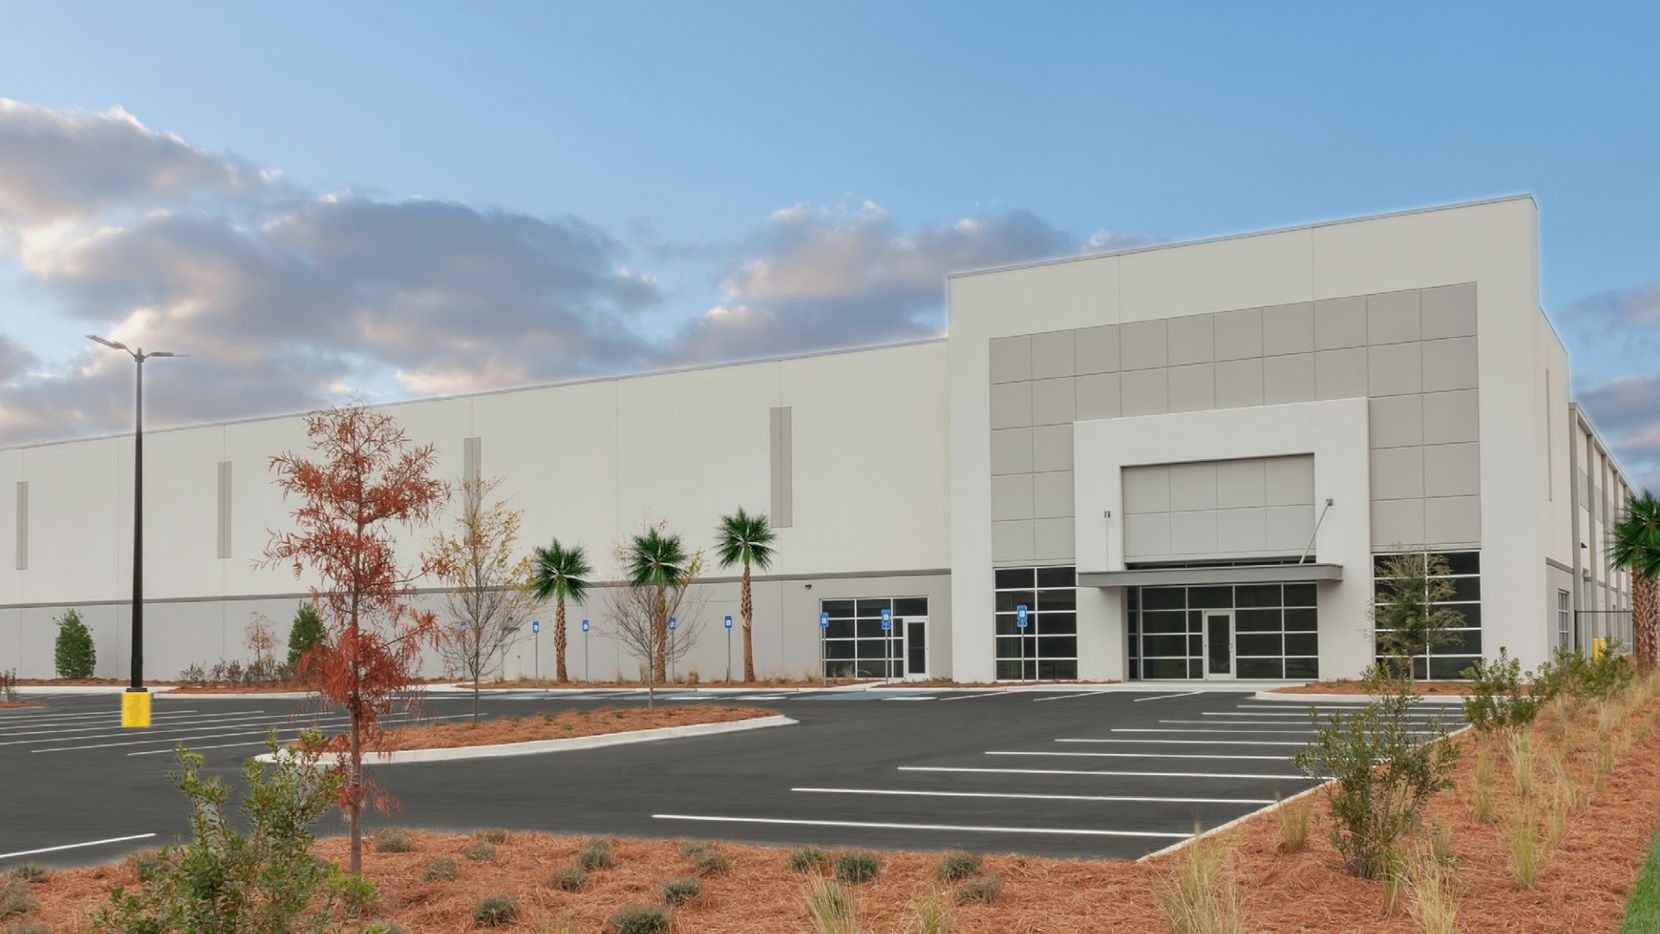 Panattoni Development recently built a more than 1 million square foot distribution center for JLA Home in Georgia.